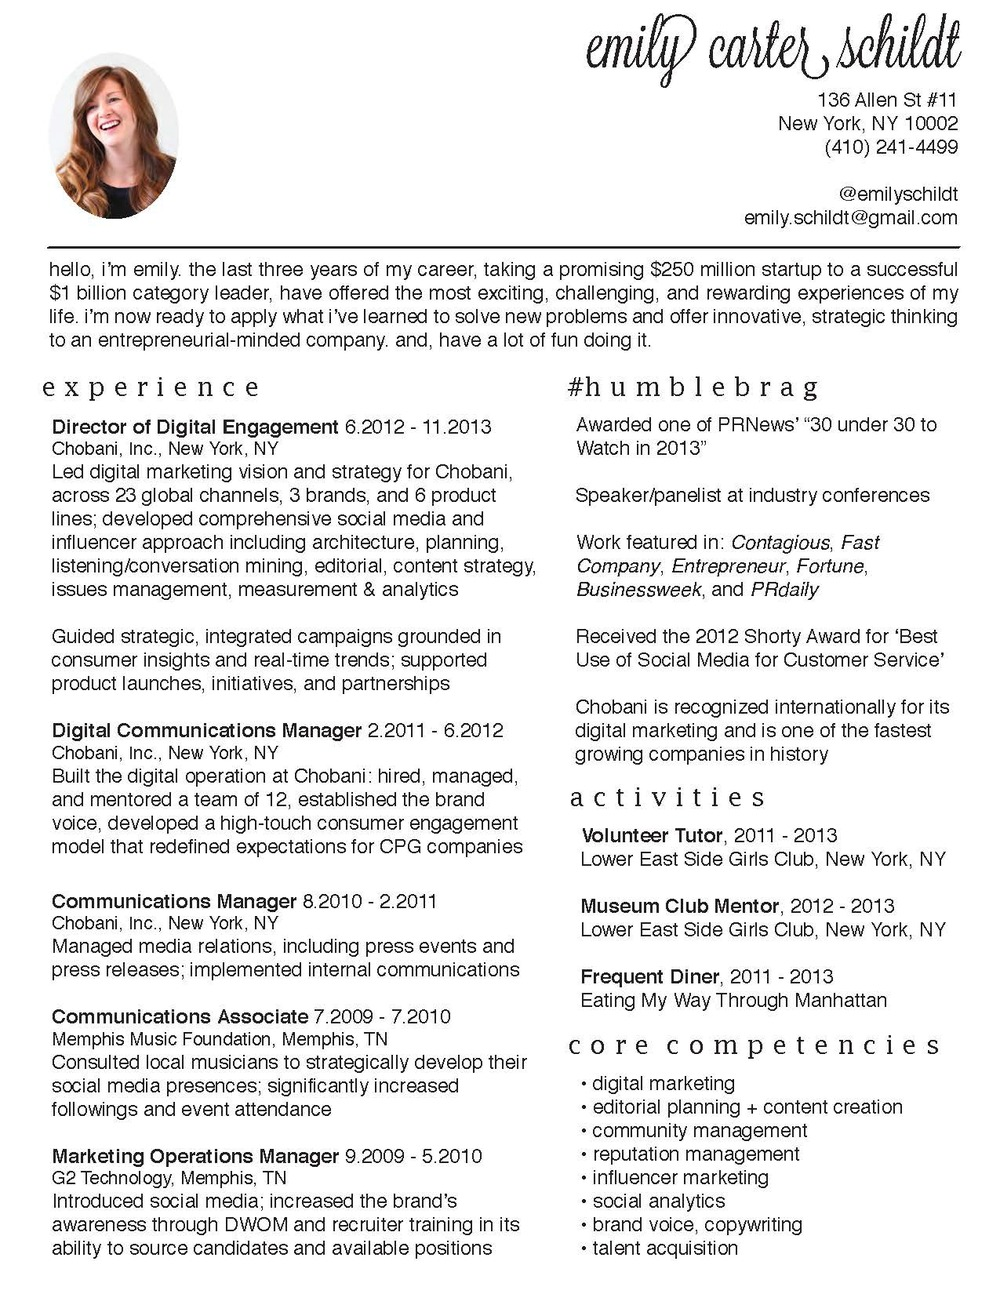 Resume Design — Emily Carter Schildt